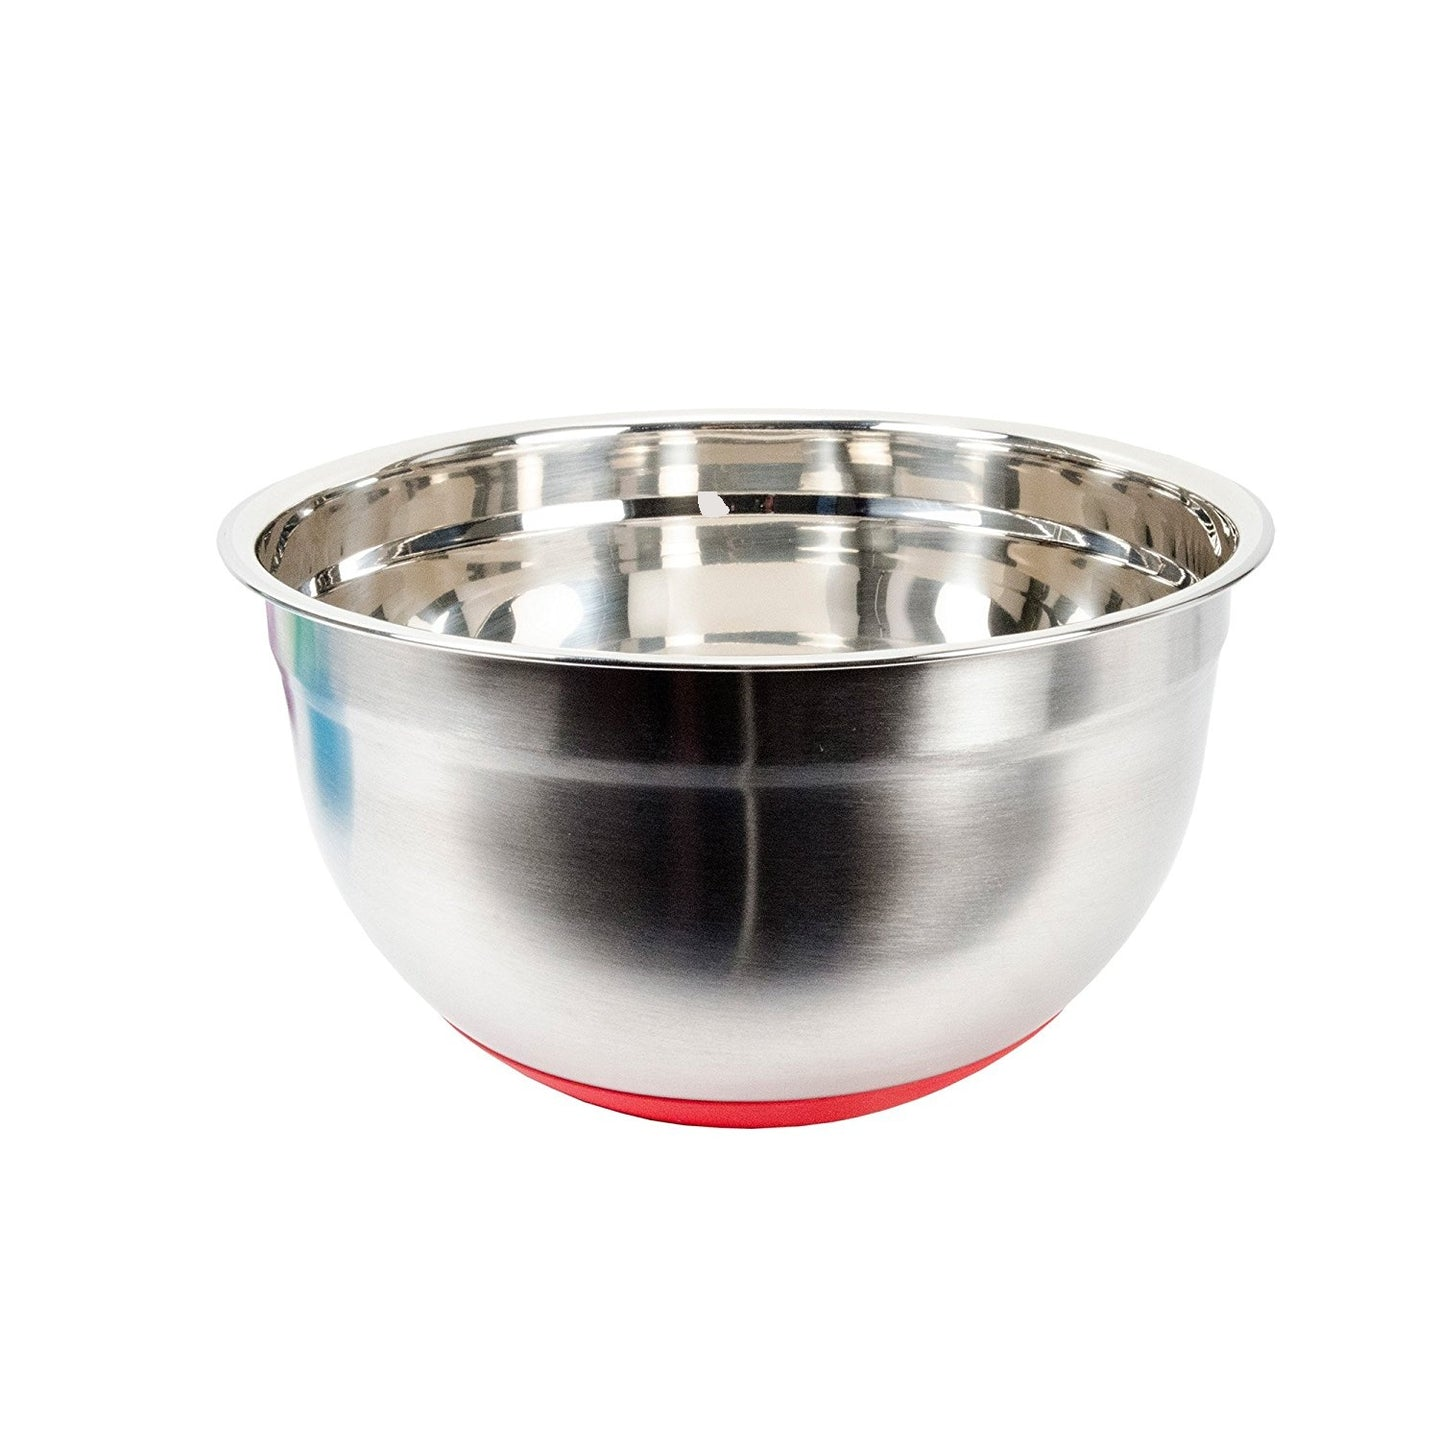 Luciano, Gourmet Mixing Bowl with Silicone Bottom, 10.25 inches, Silver, Red